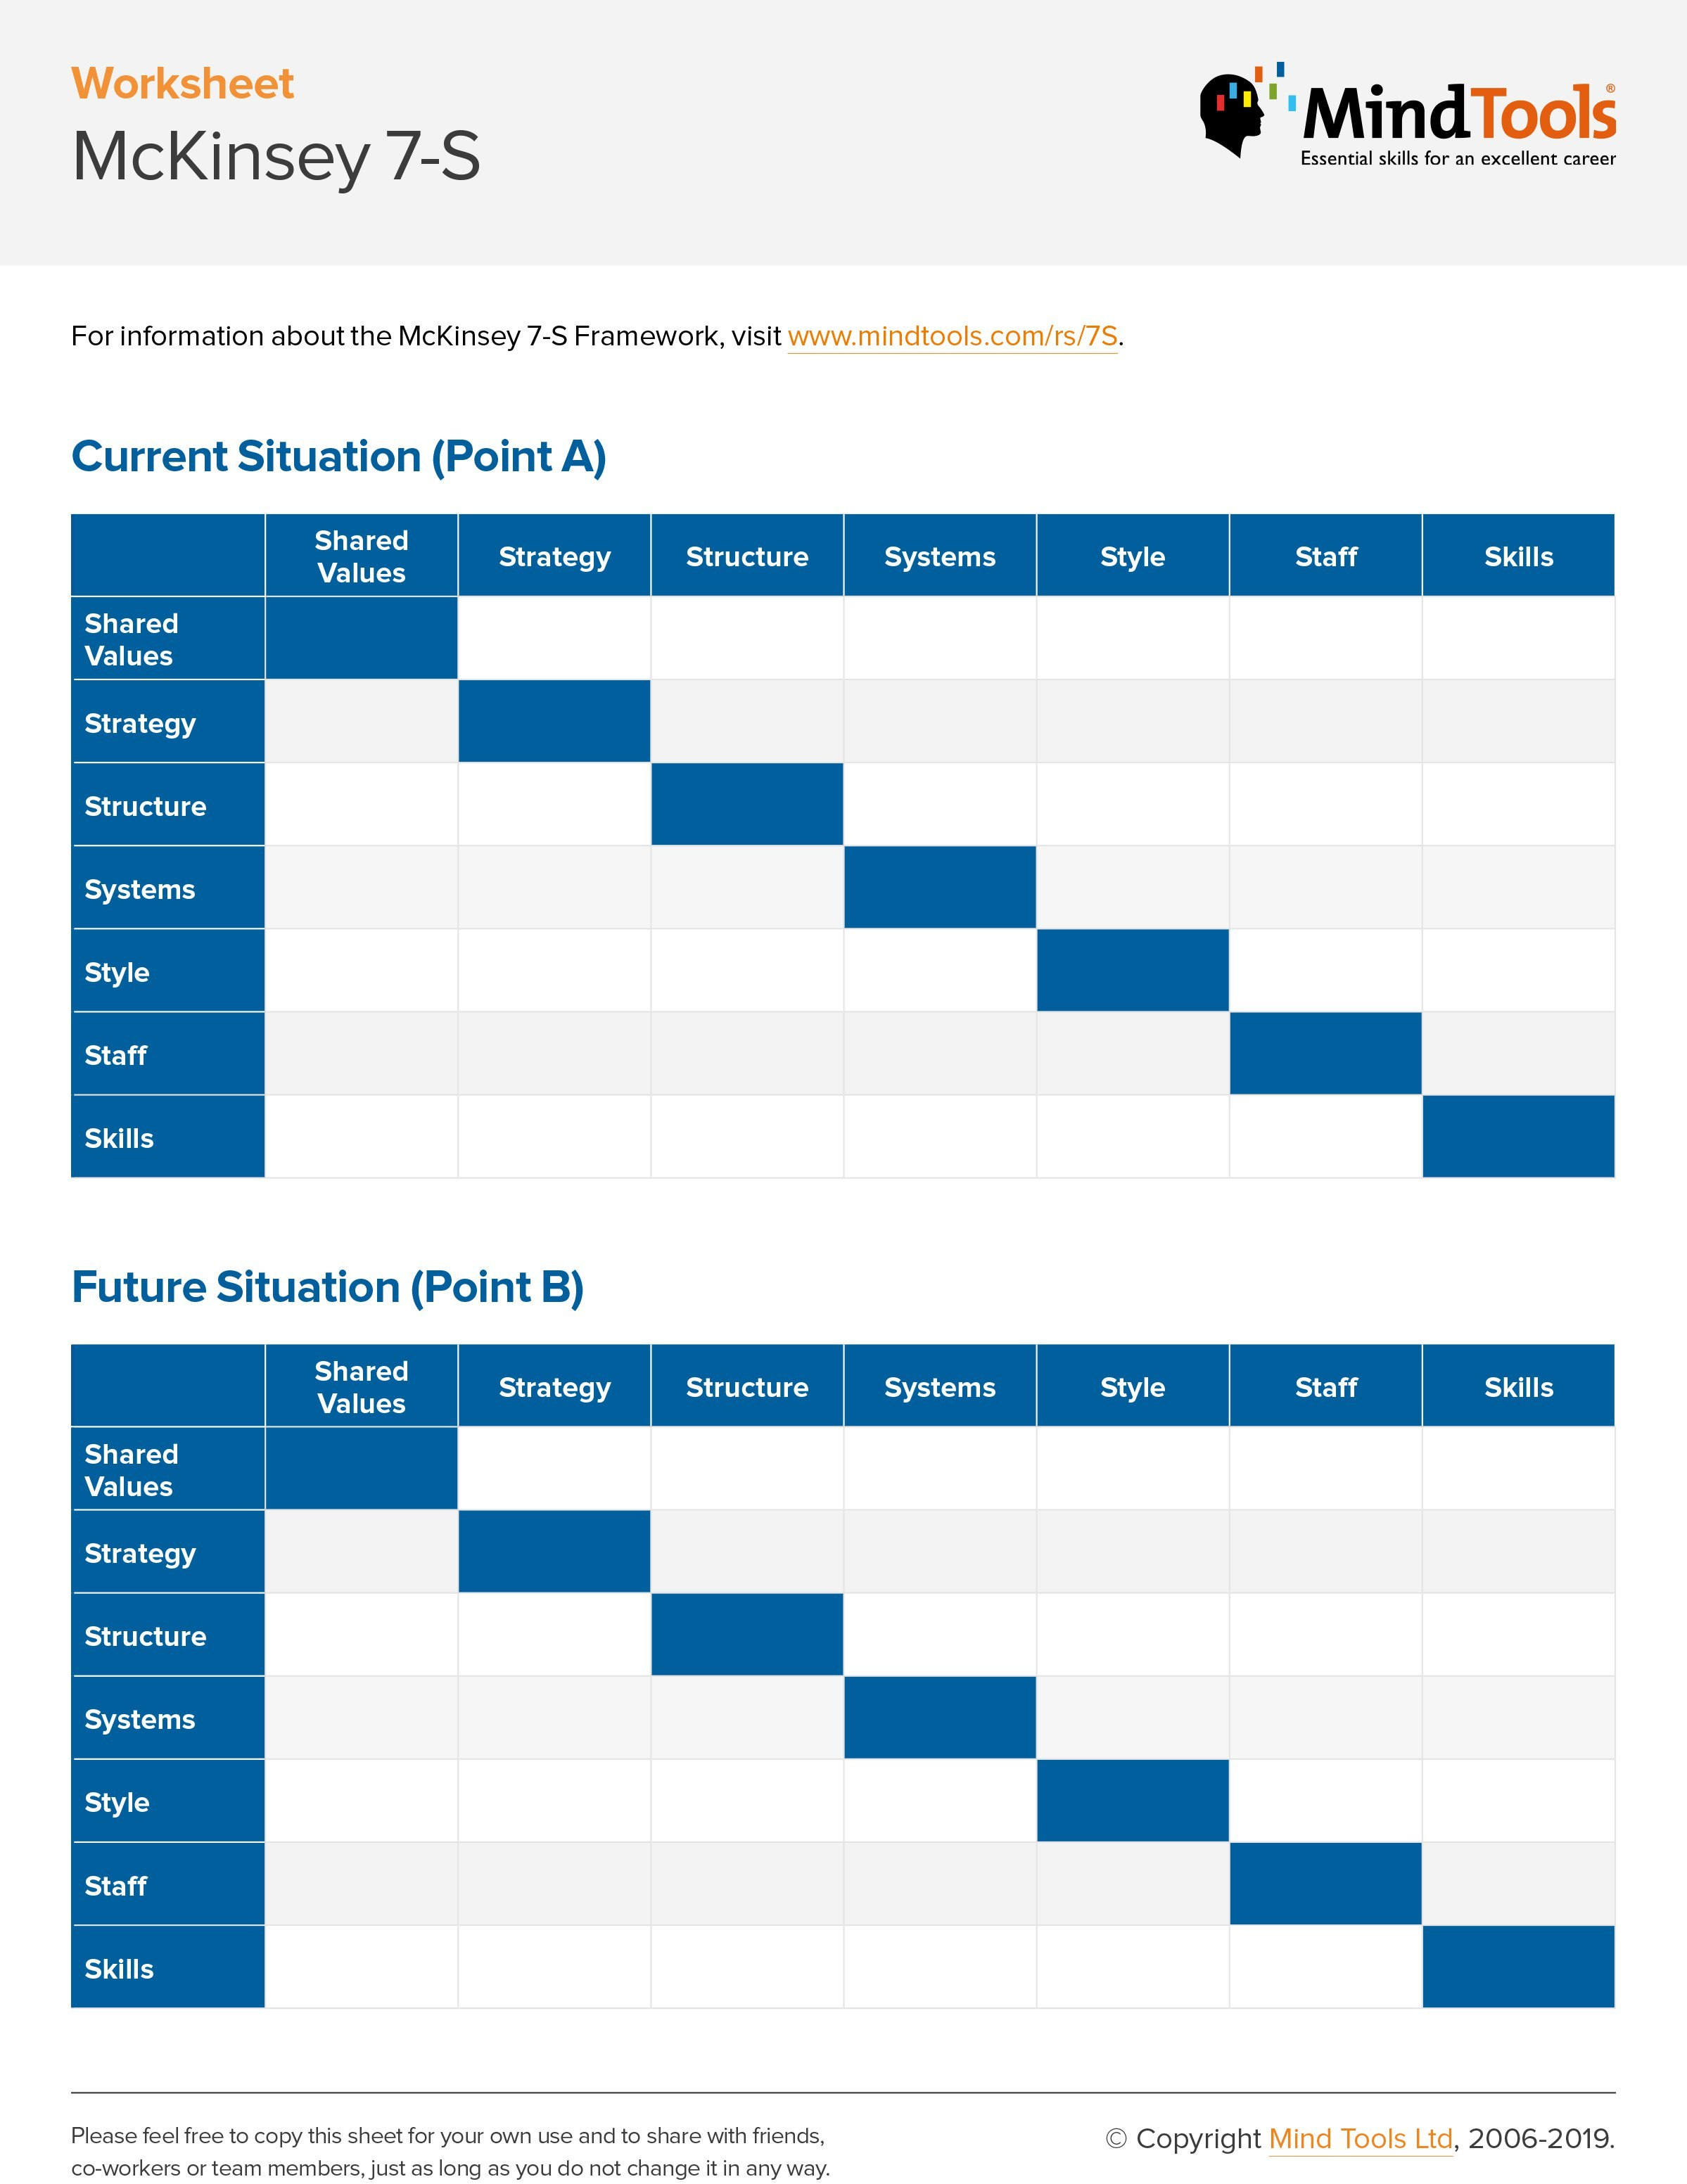 The Mckinsey S Framework  Strategy Skills From Mindtools Intended For Mckinsey Business Plan Template